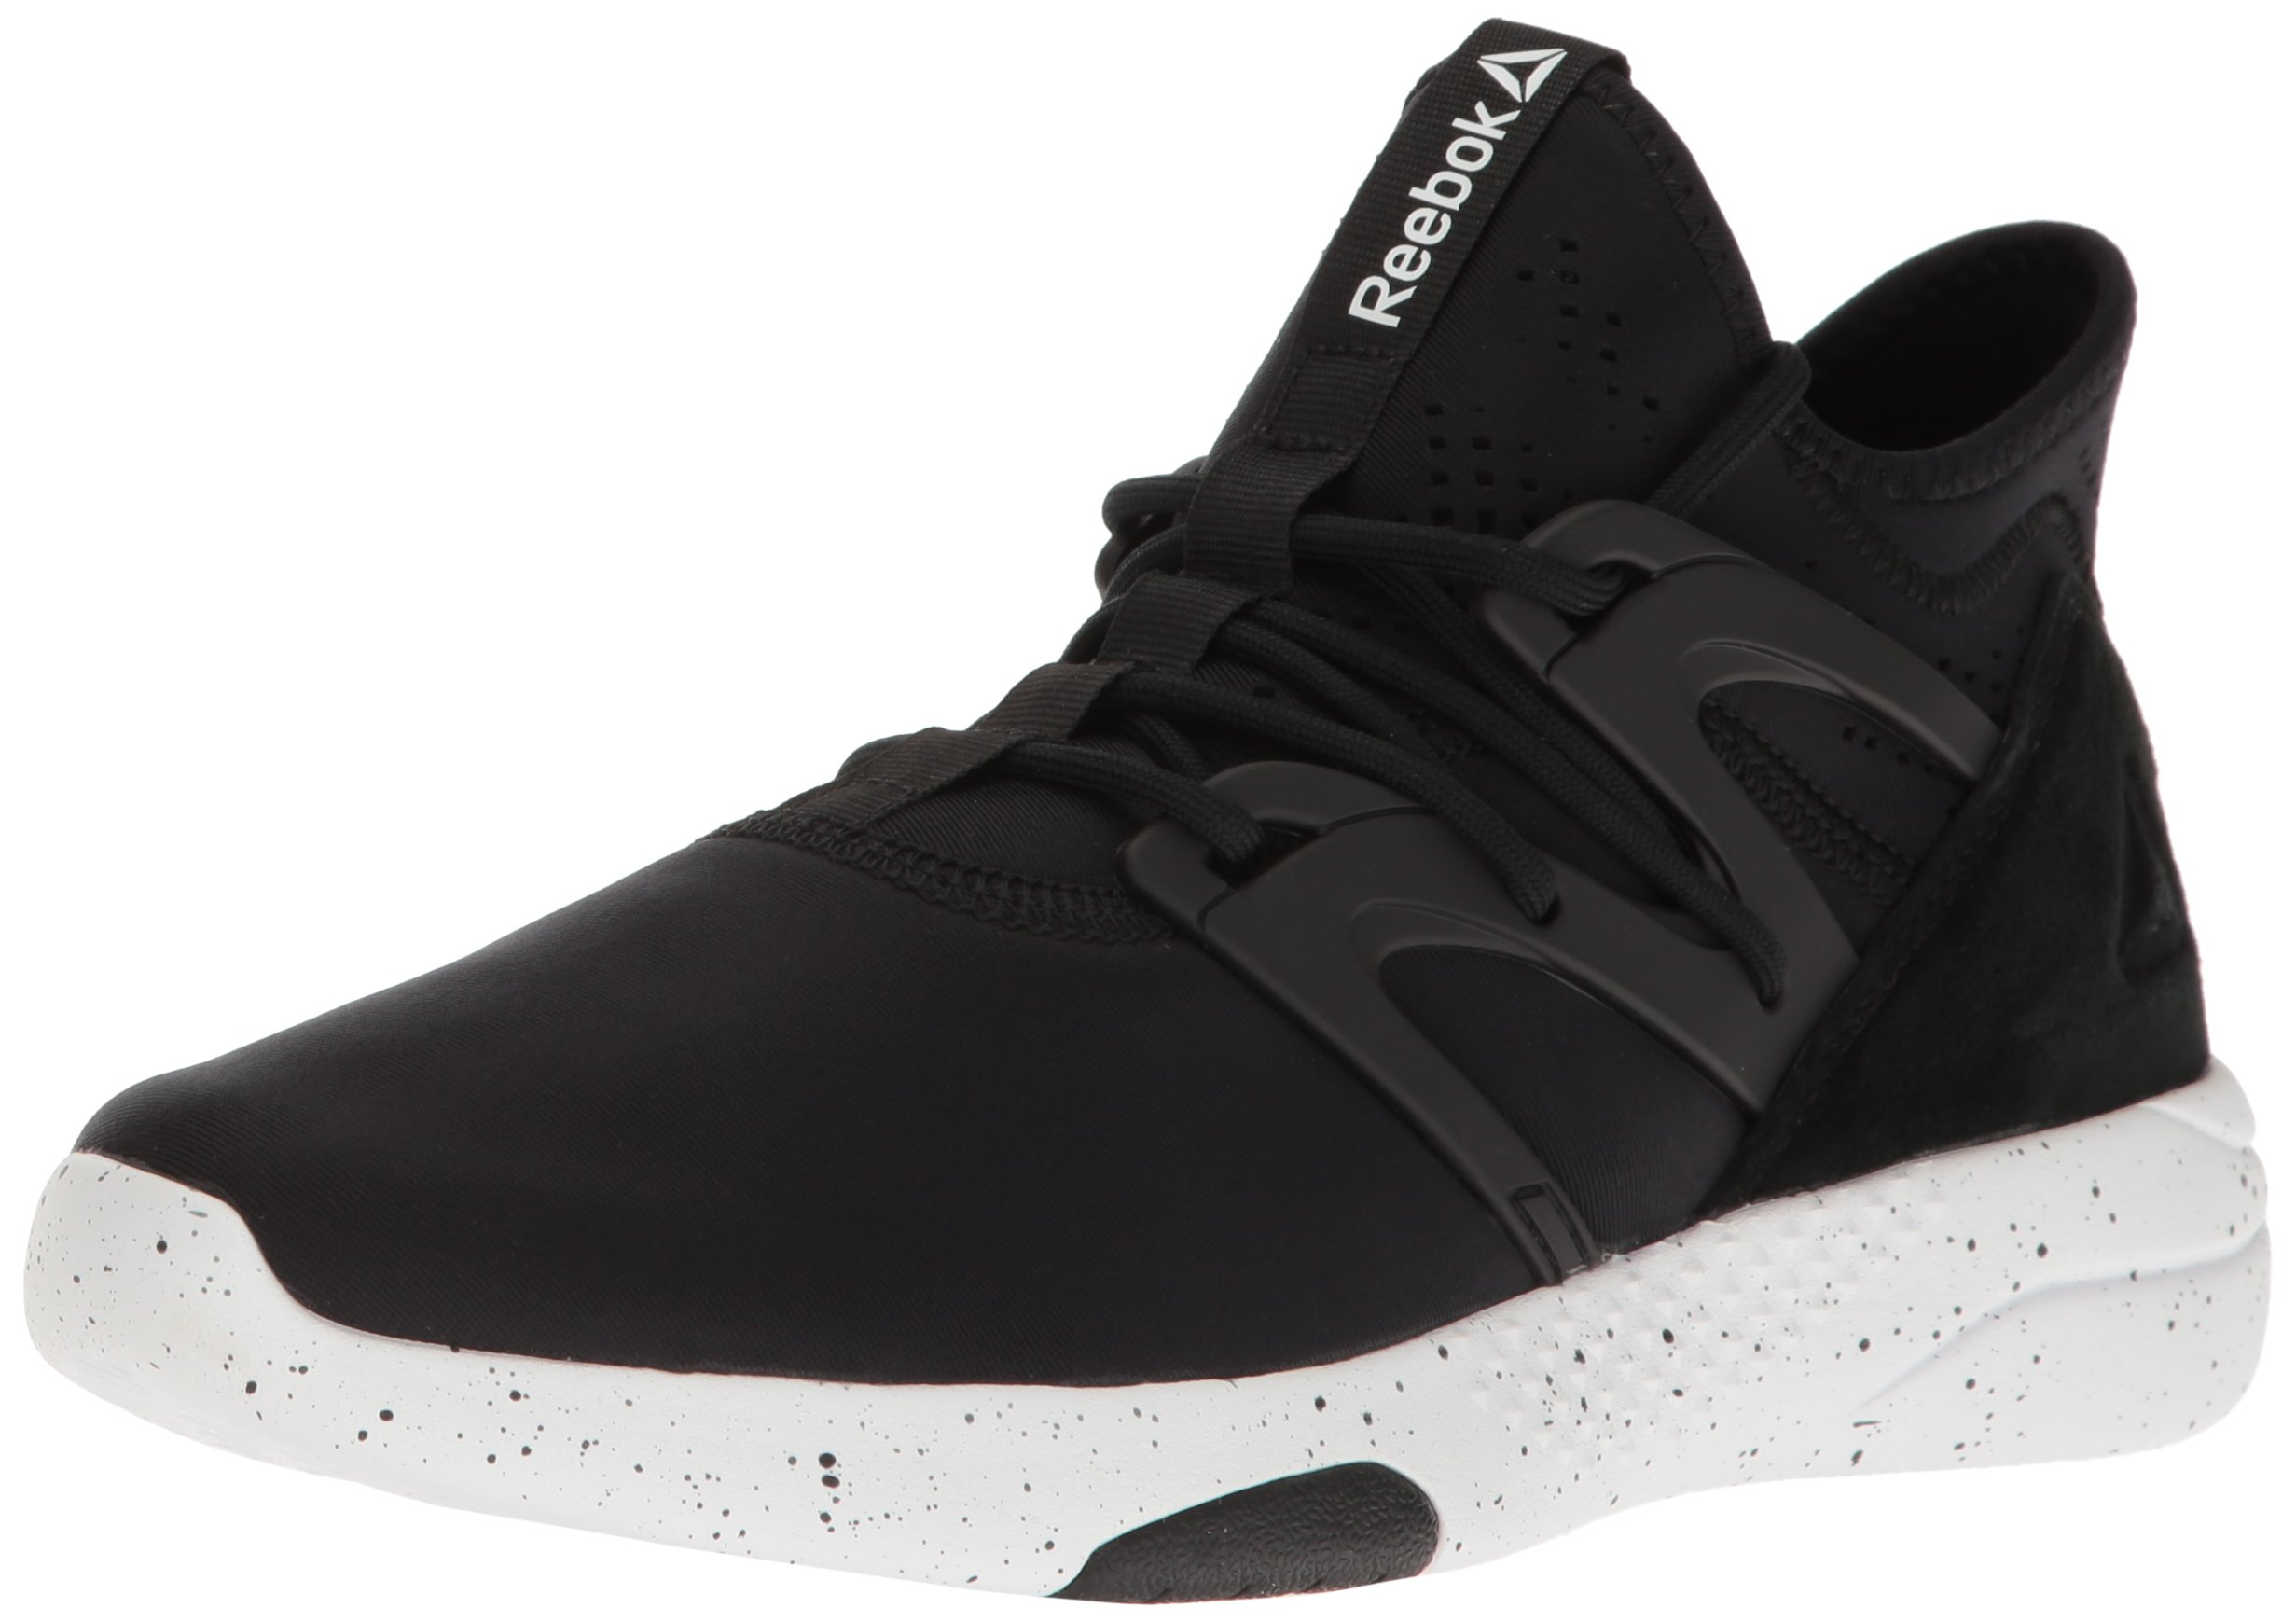 Reebok Women's Hayasu Dance Shoe, Black/White, 7.5 M US